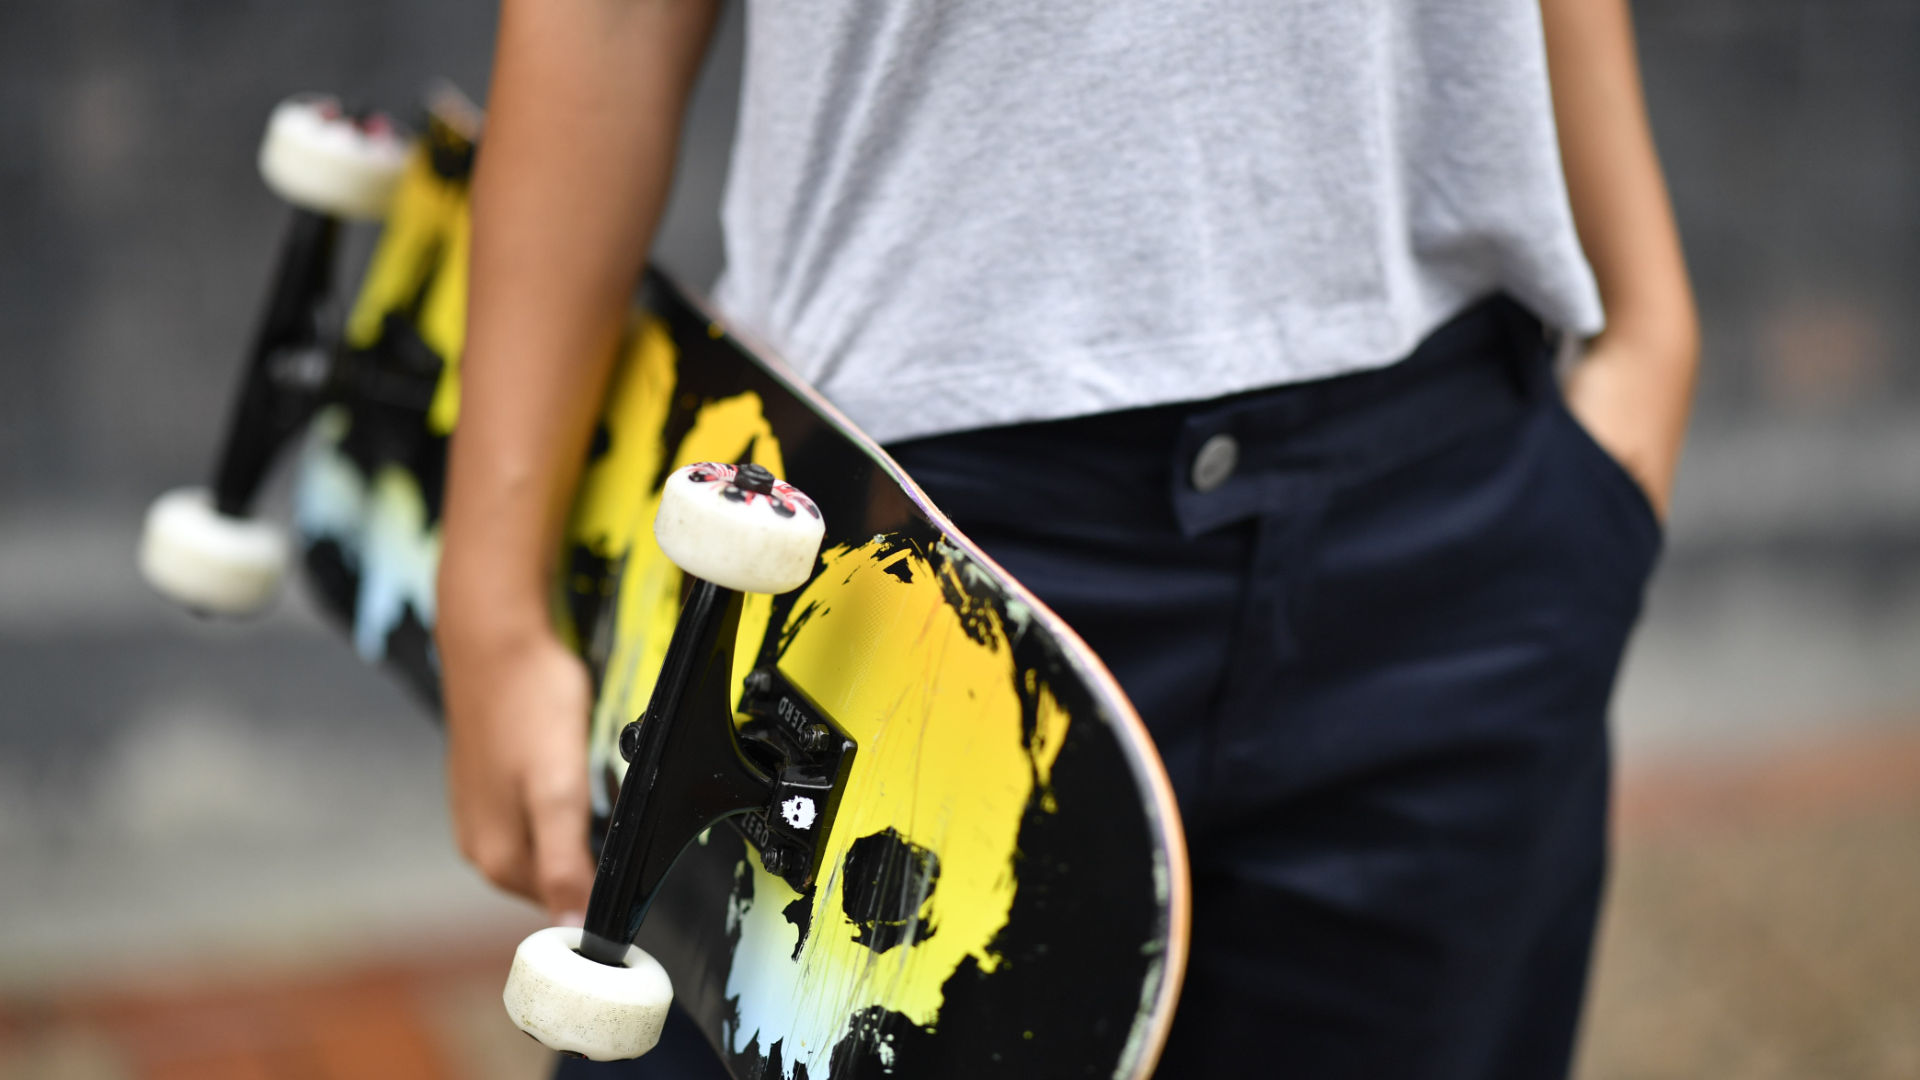 Holding a Bloody Rainbow skateboard by Zero with the wheelbase showing